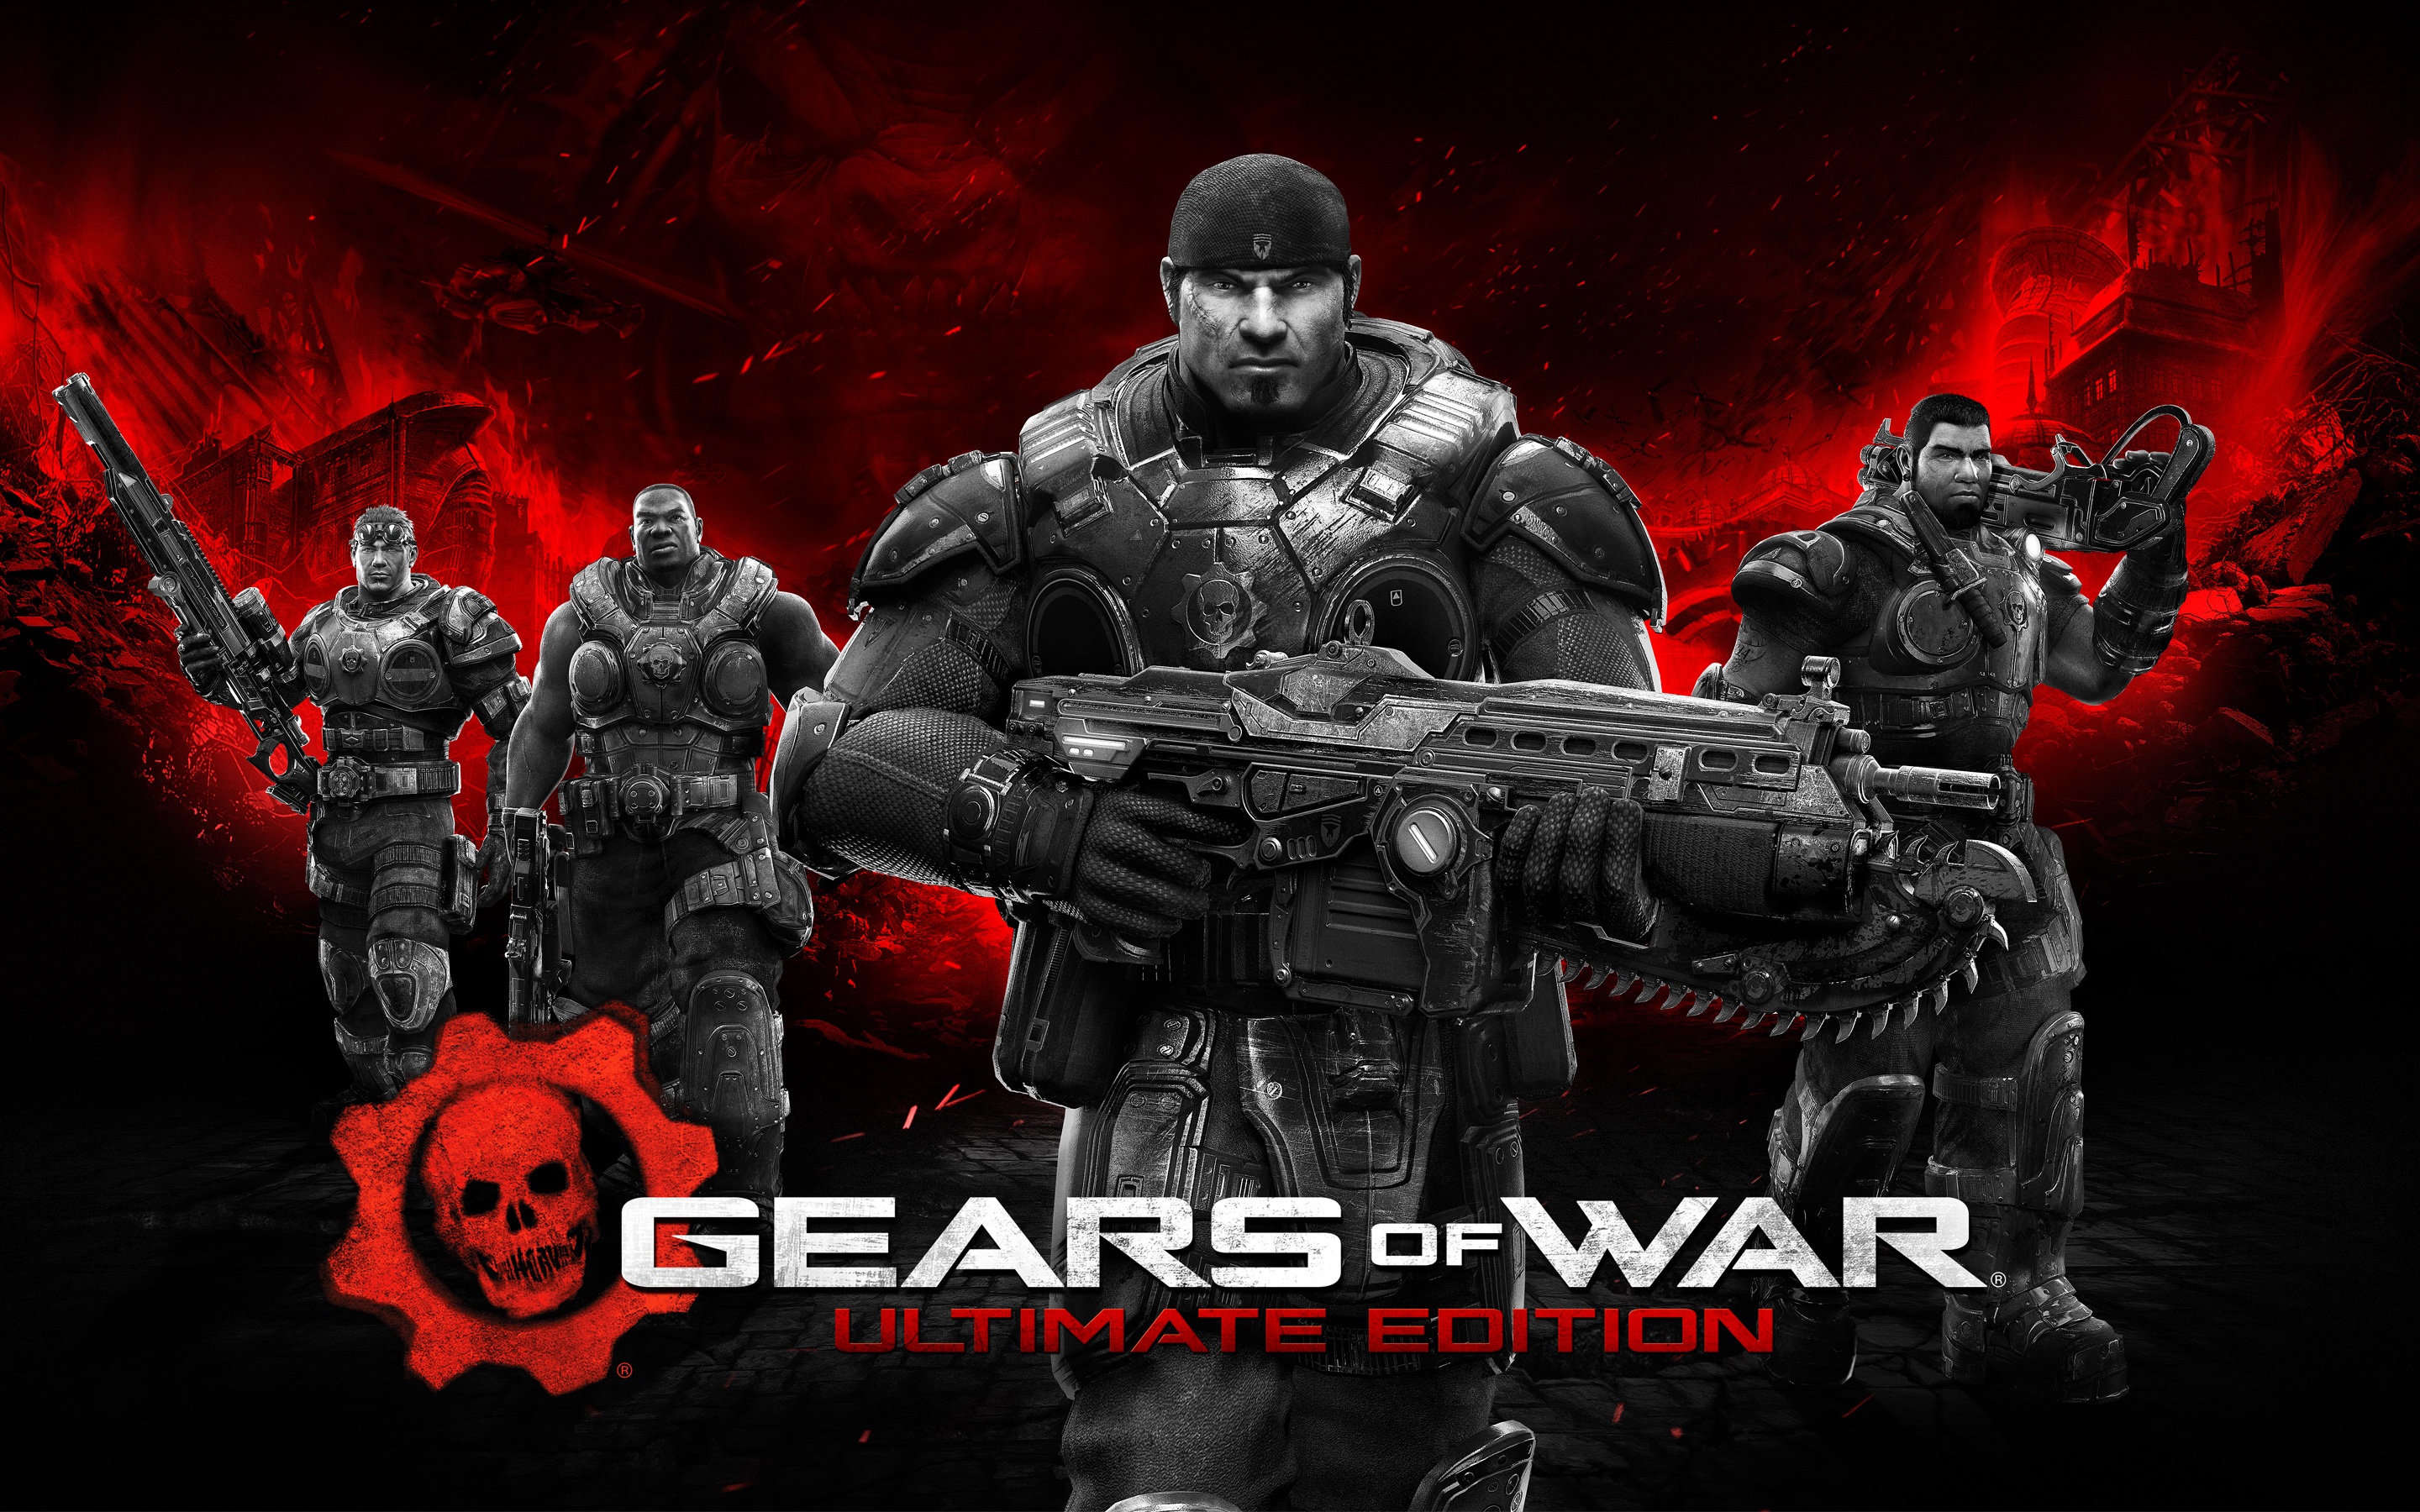 HD Wallpapers Gears of War Ultimate Edition